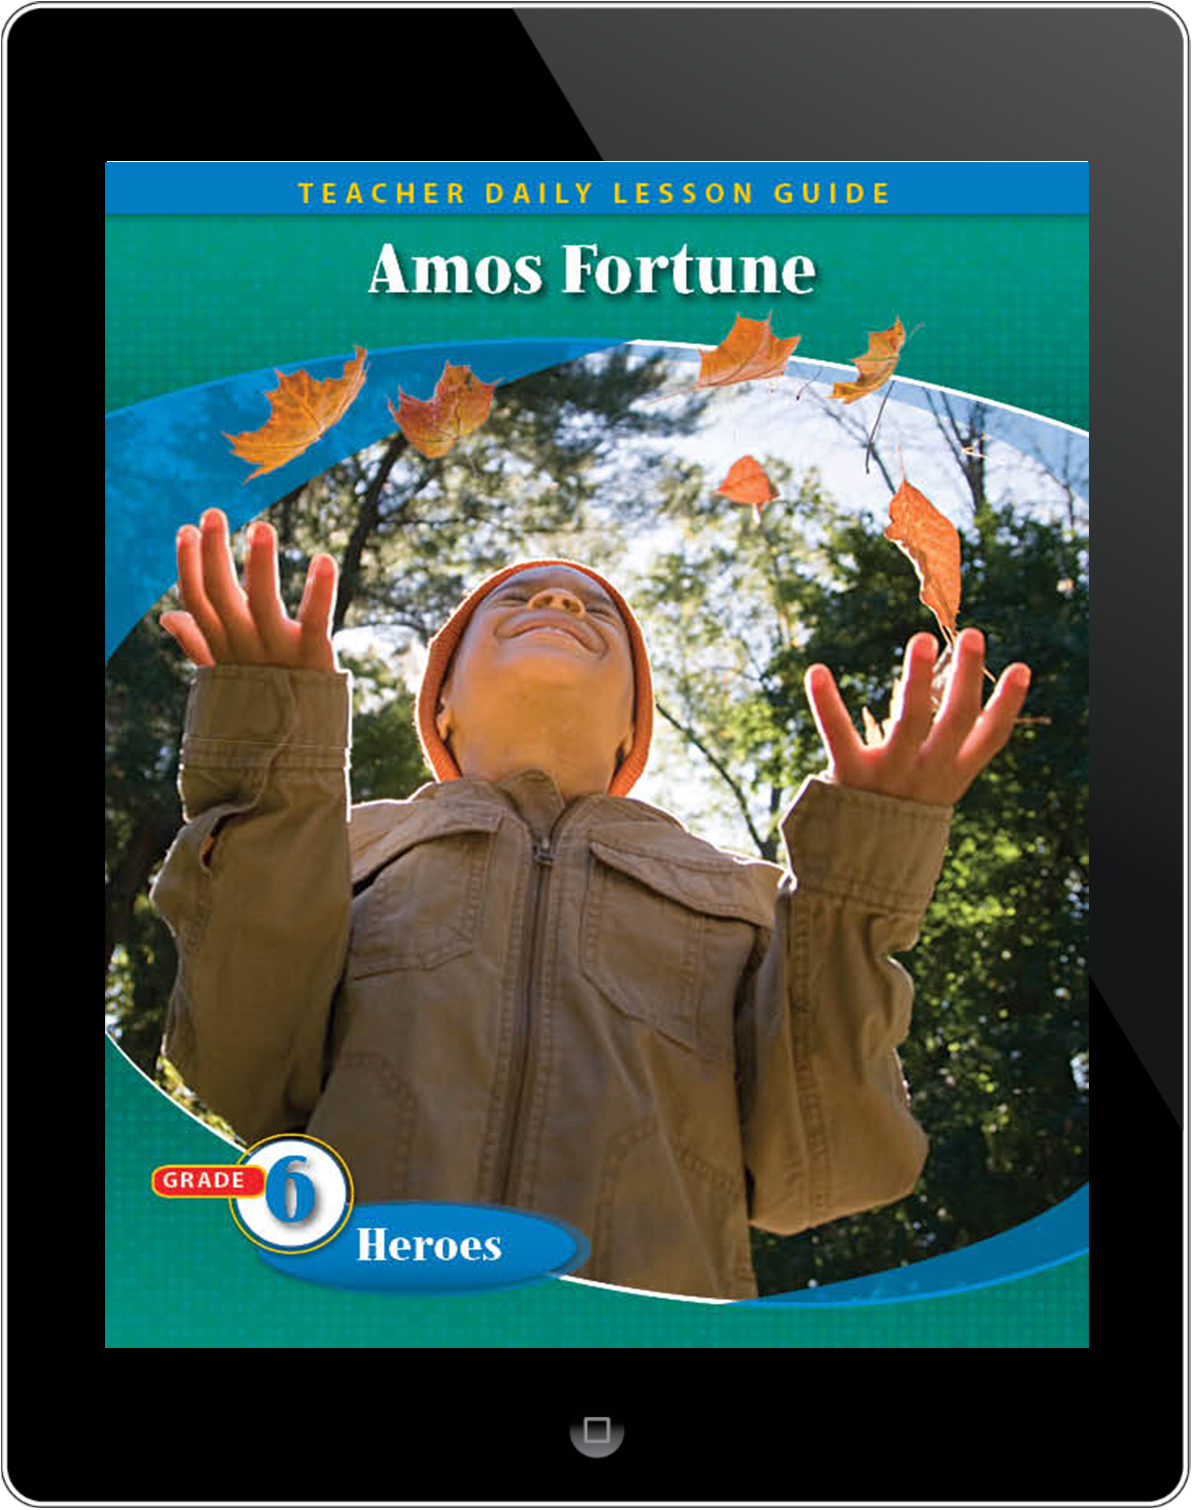 Pathways2.0 Grade 6 Heroes Unit: Amos Fortune: Free Man Daily Lesson Guide 5 Year License